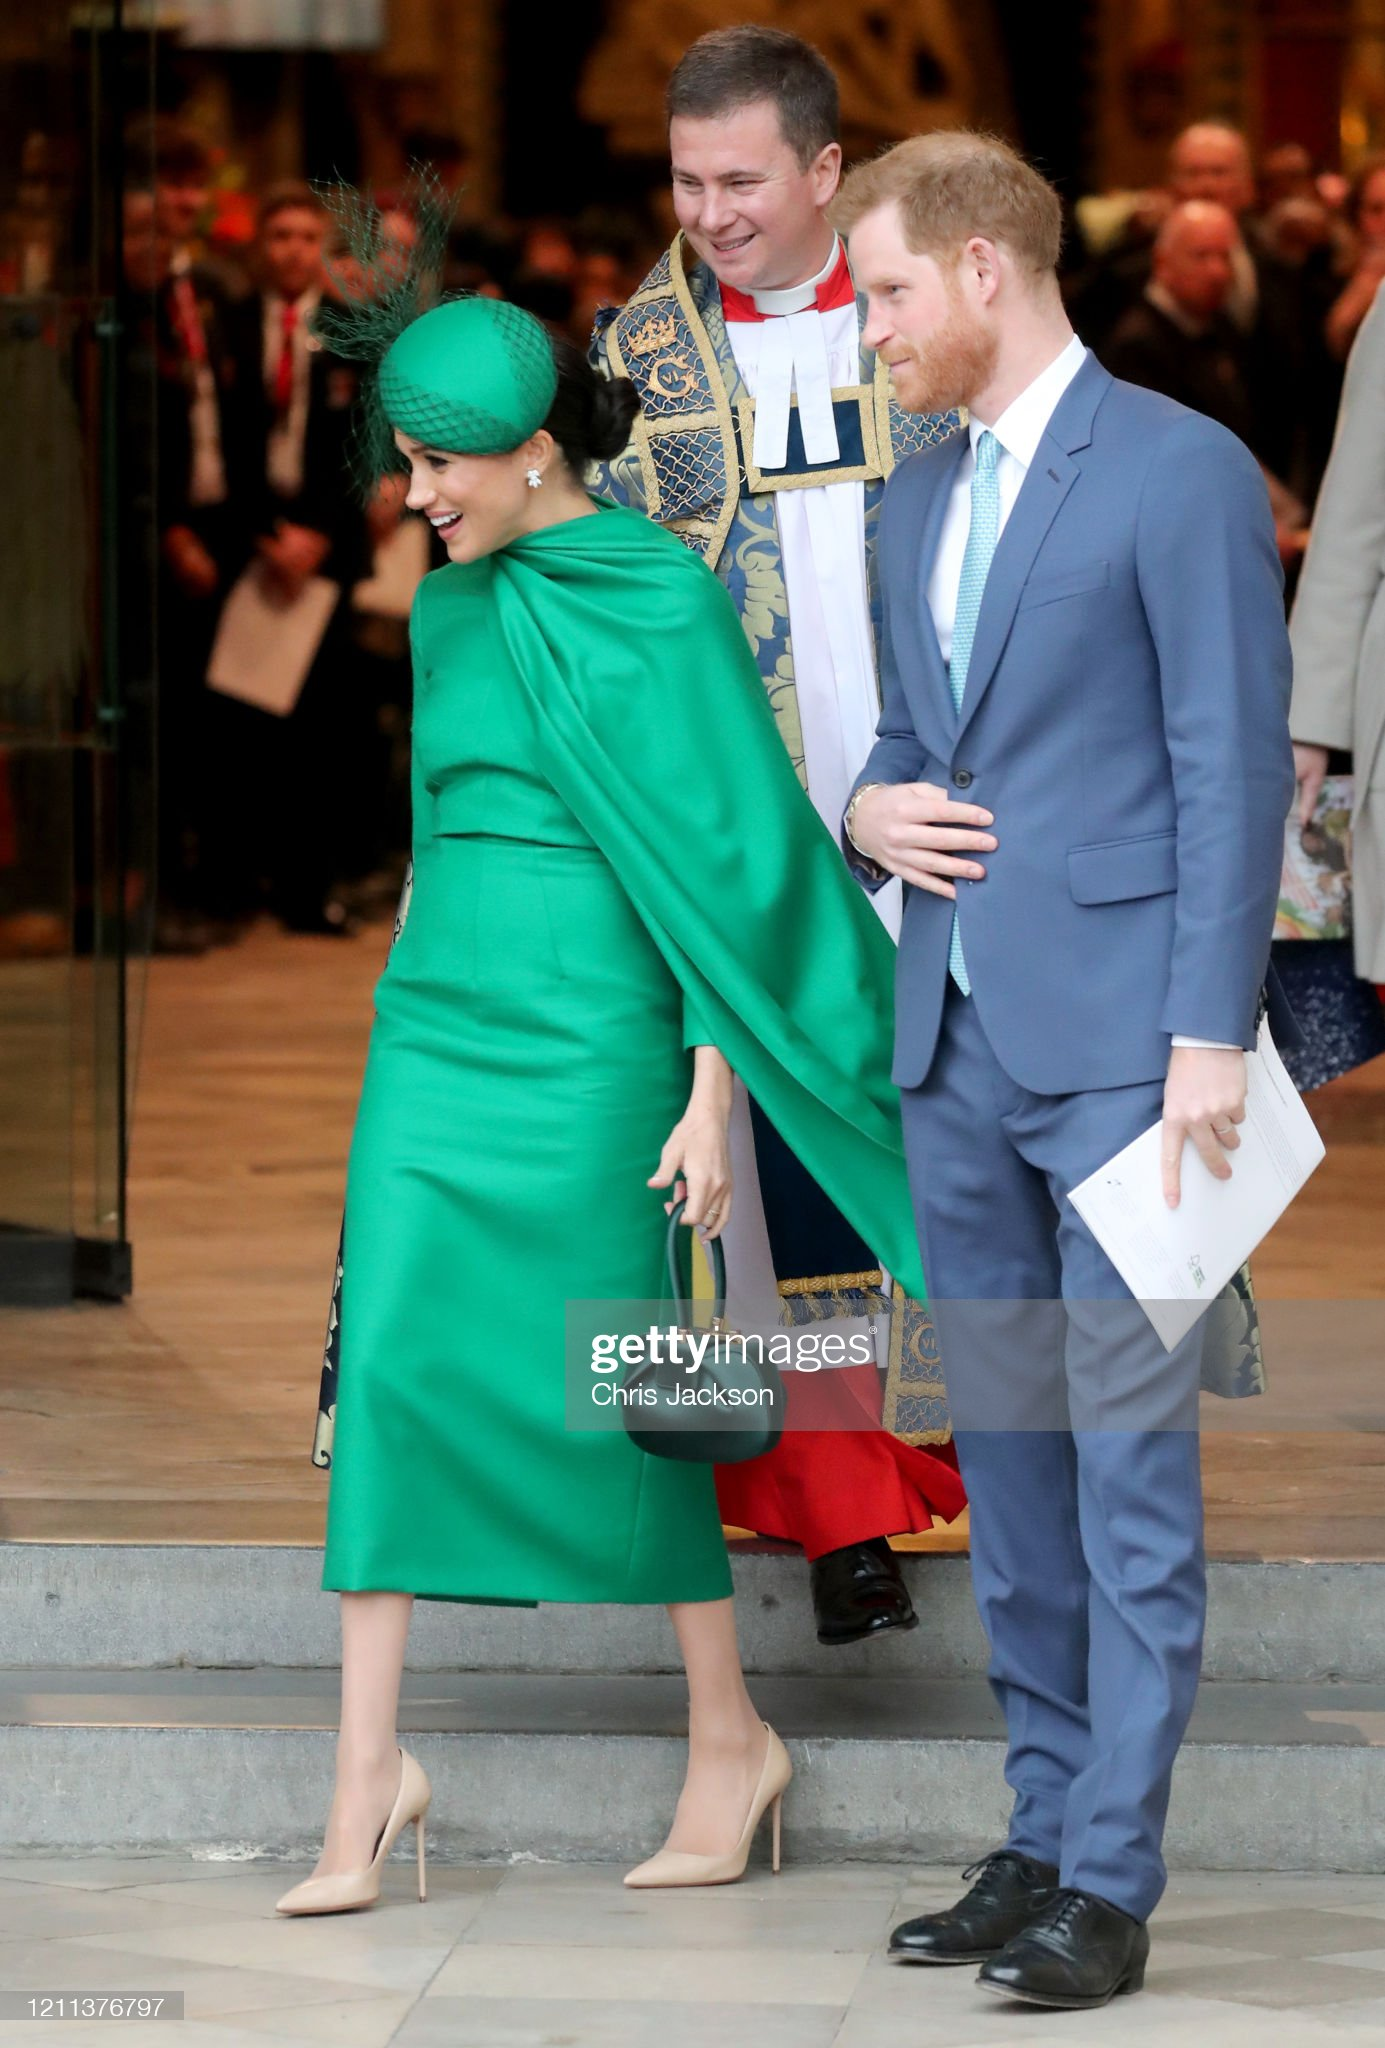 https://media.gettyimages.com/photos/meghan-duchess-of-sussex-and-prince-harry-duke-of-sussex-depart-the-picture-id1211376797?s=2048x2048